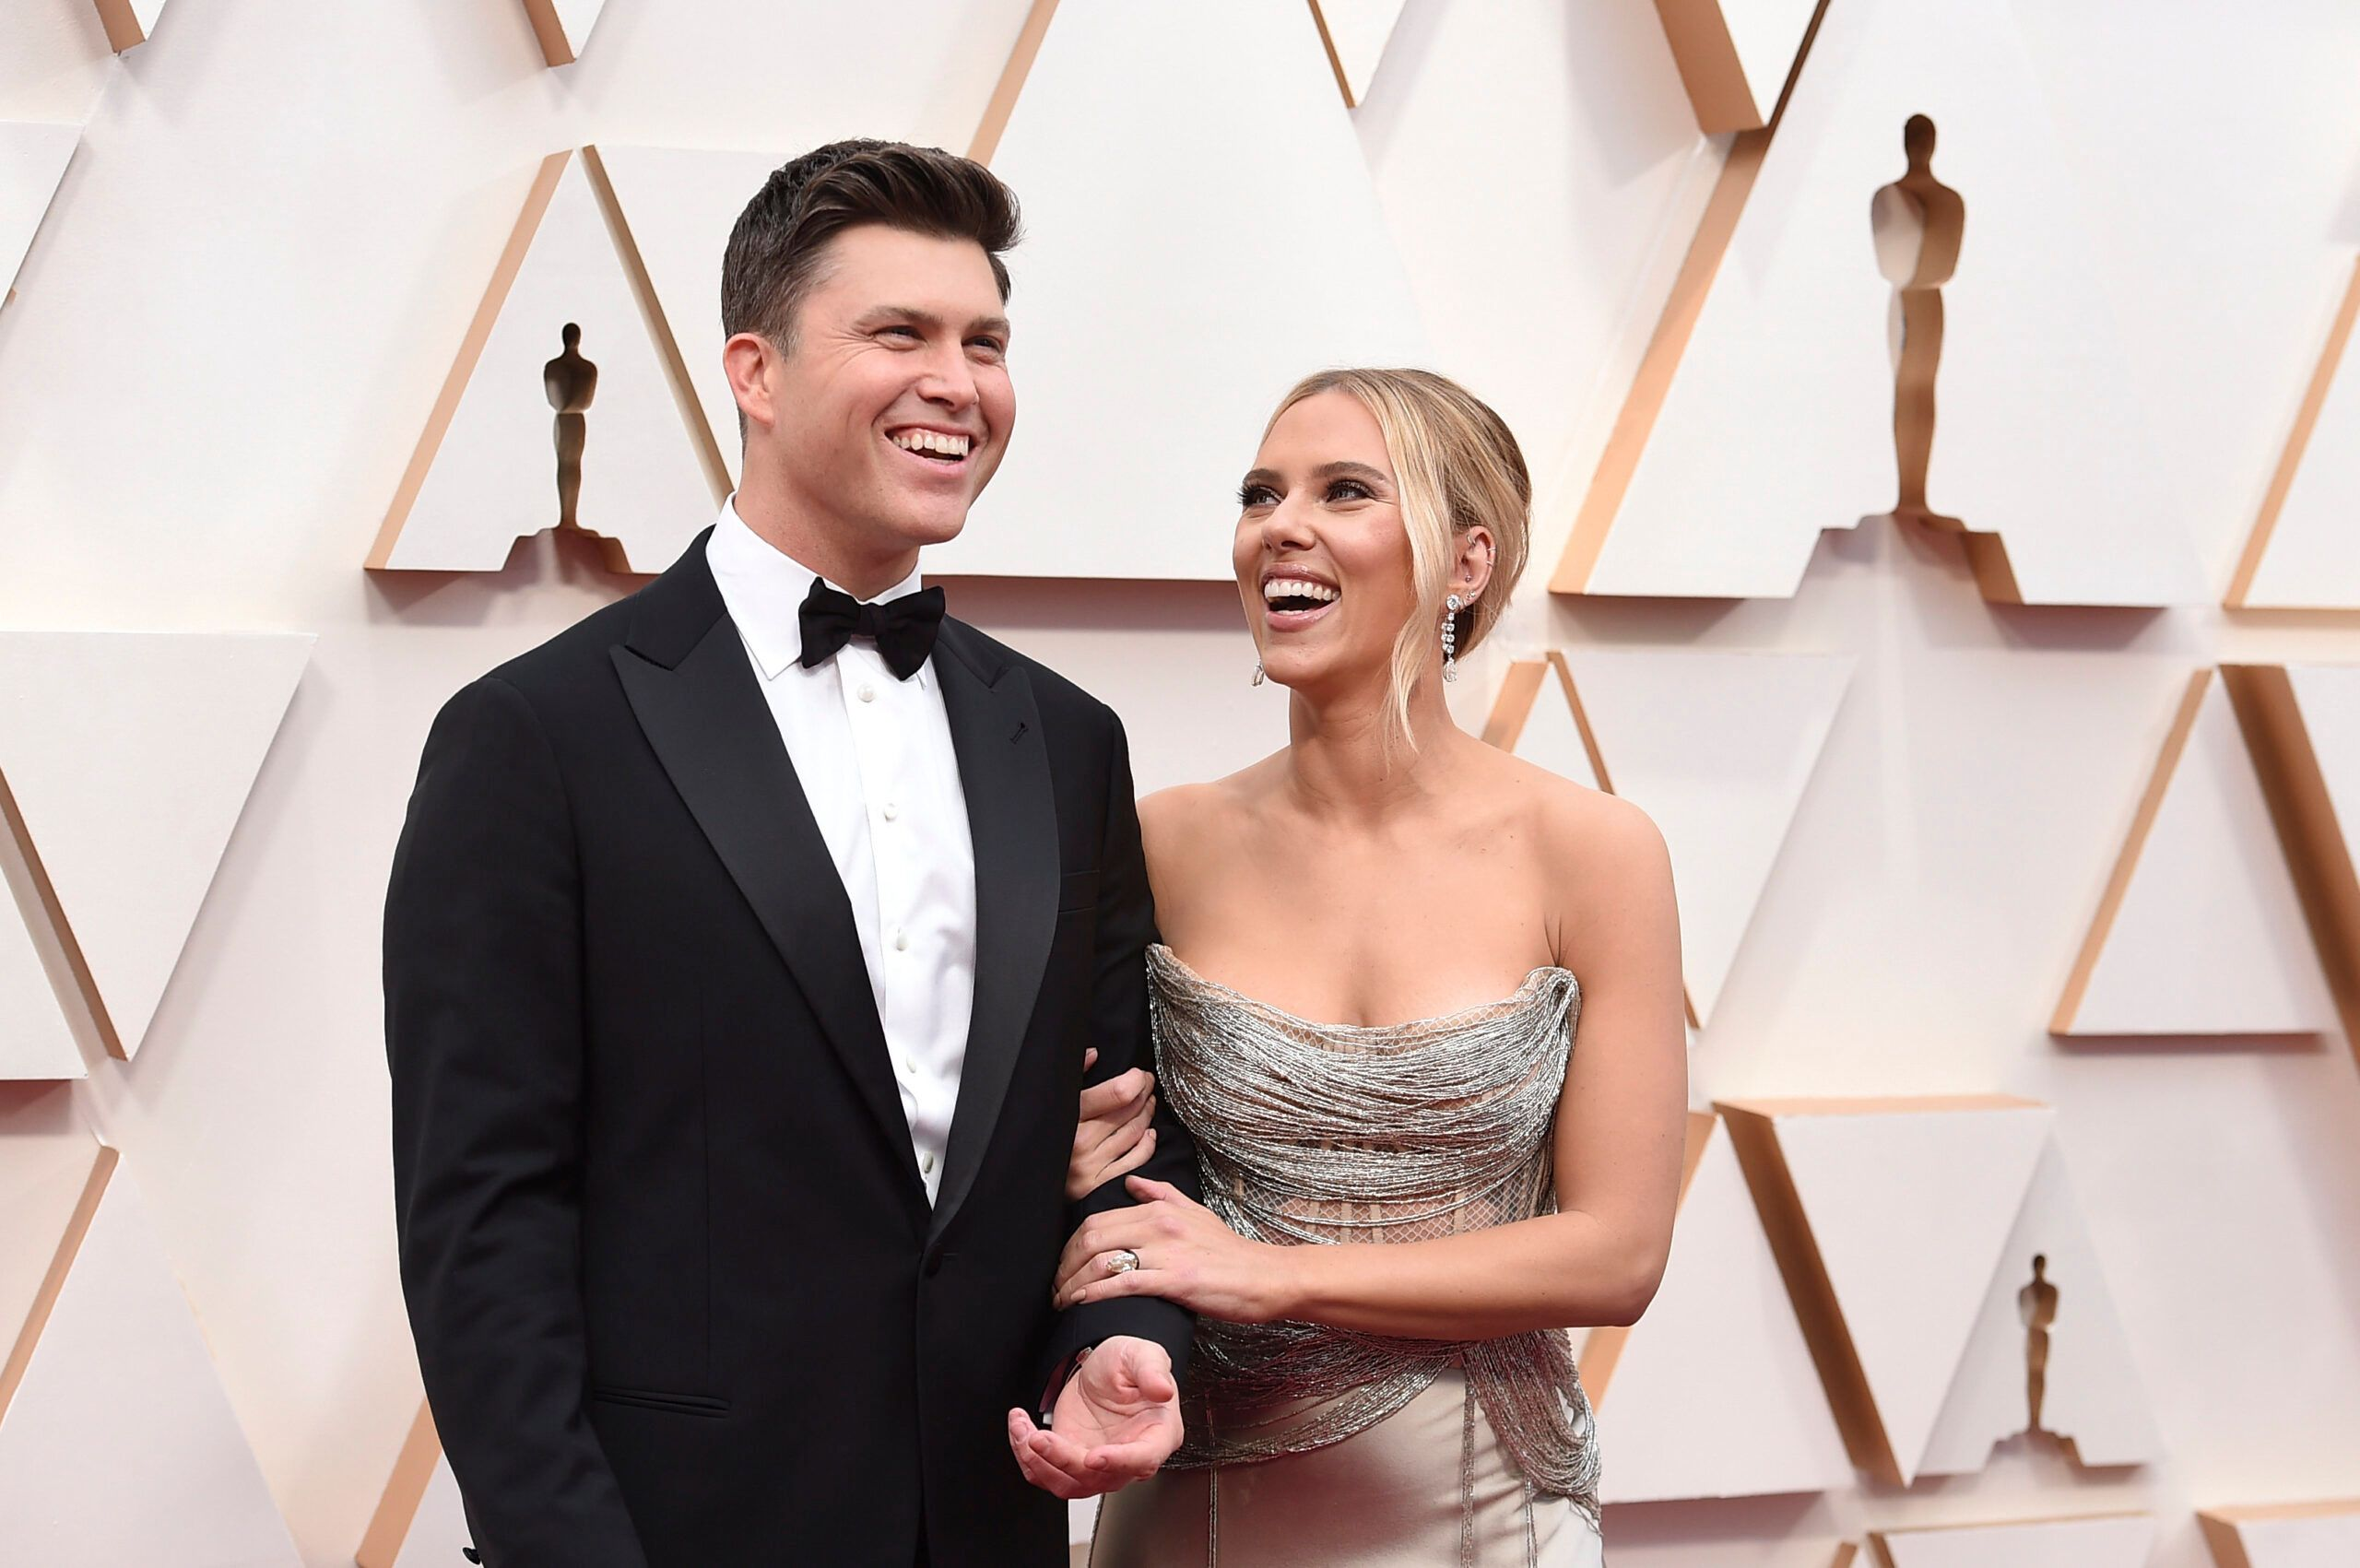 Scarlett Johansson And Colin Jost Tie The Knot In Intimate Ceremony